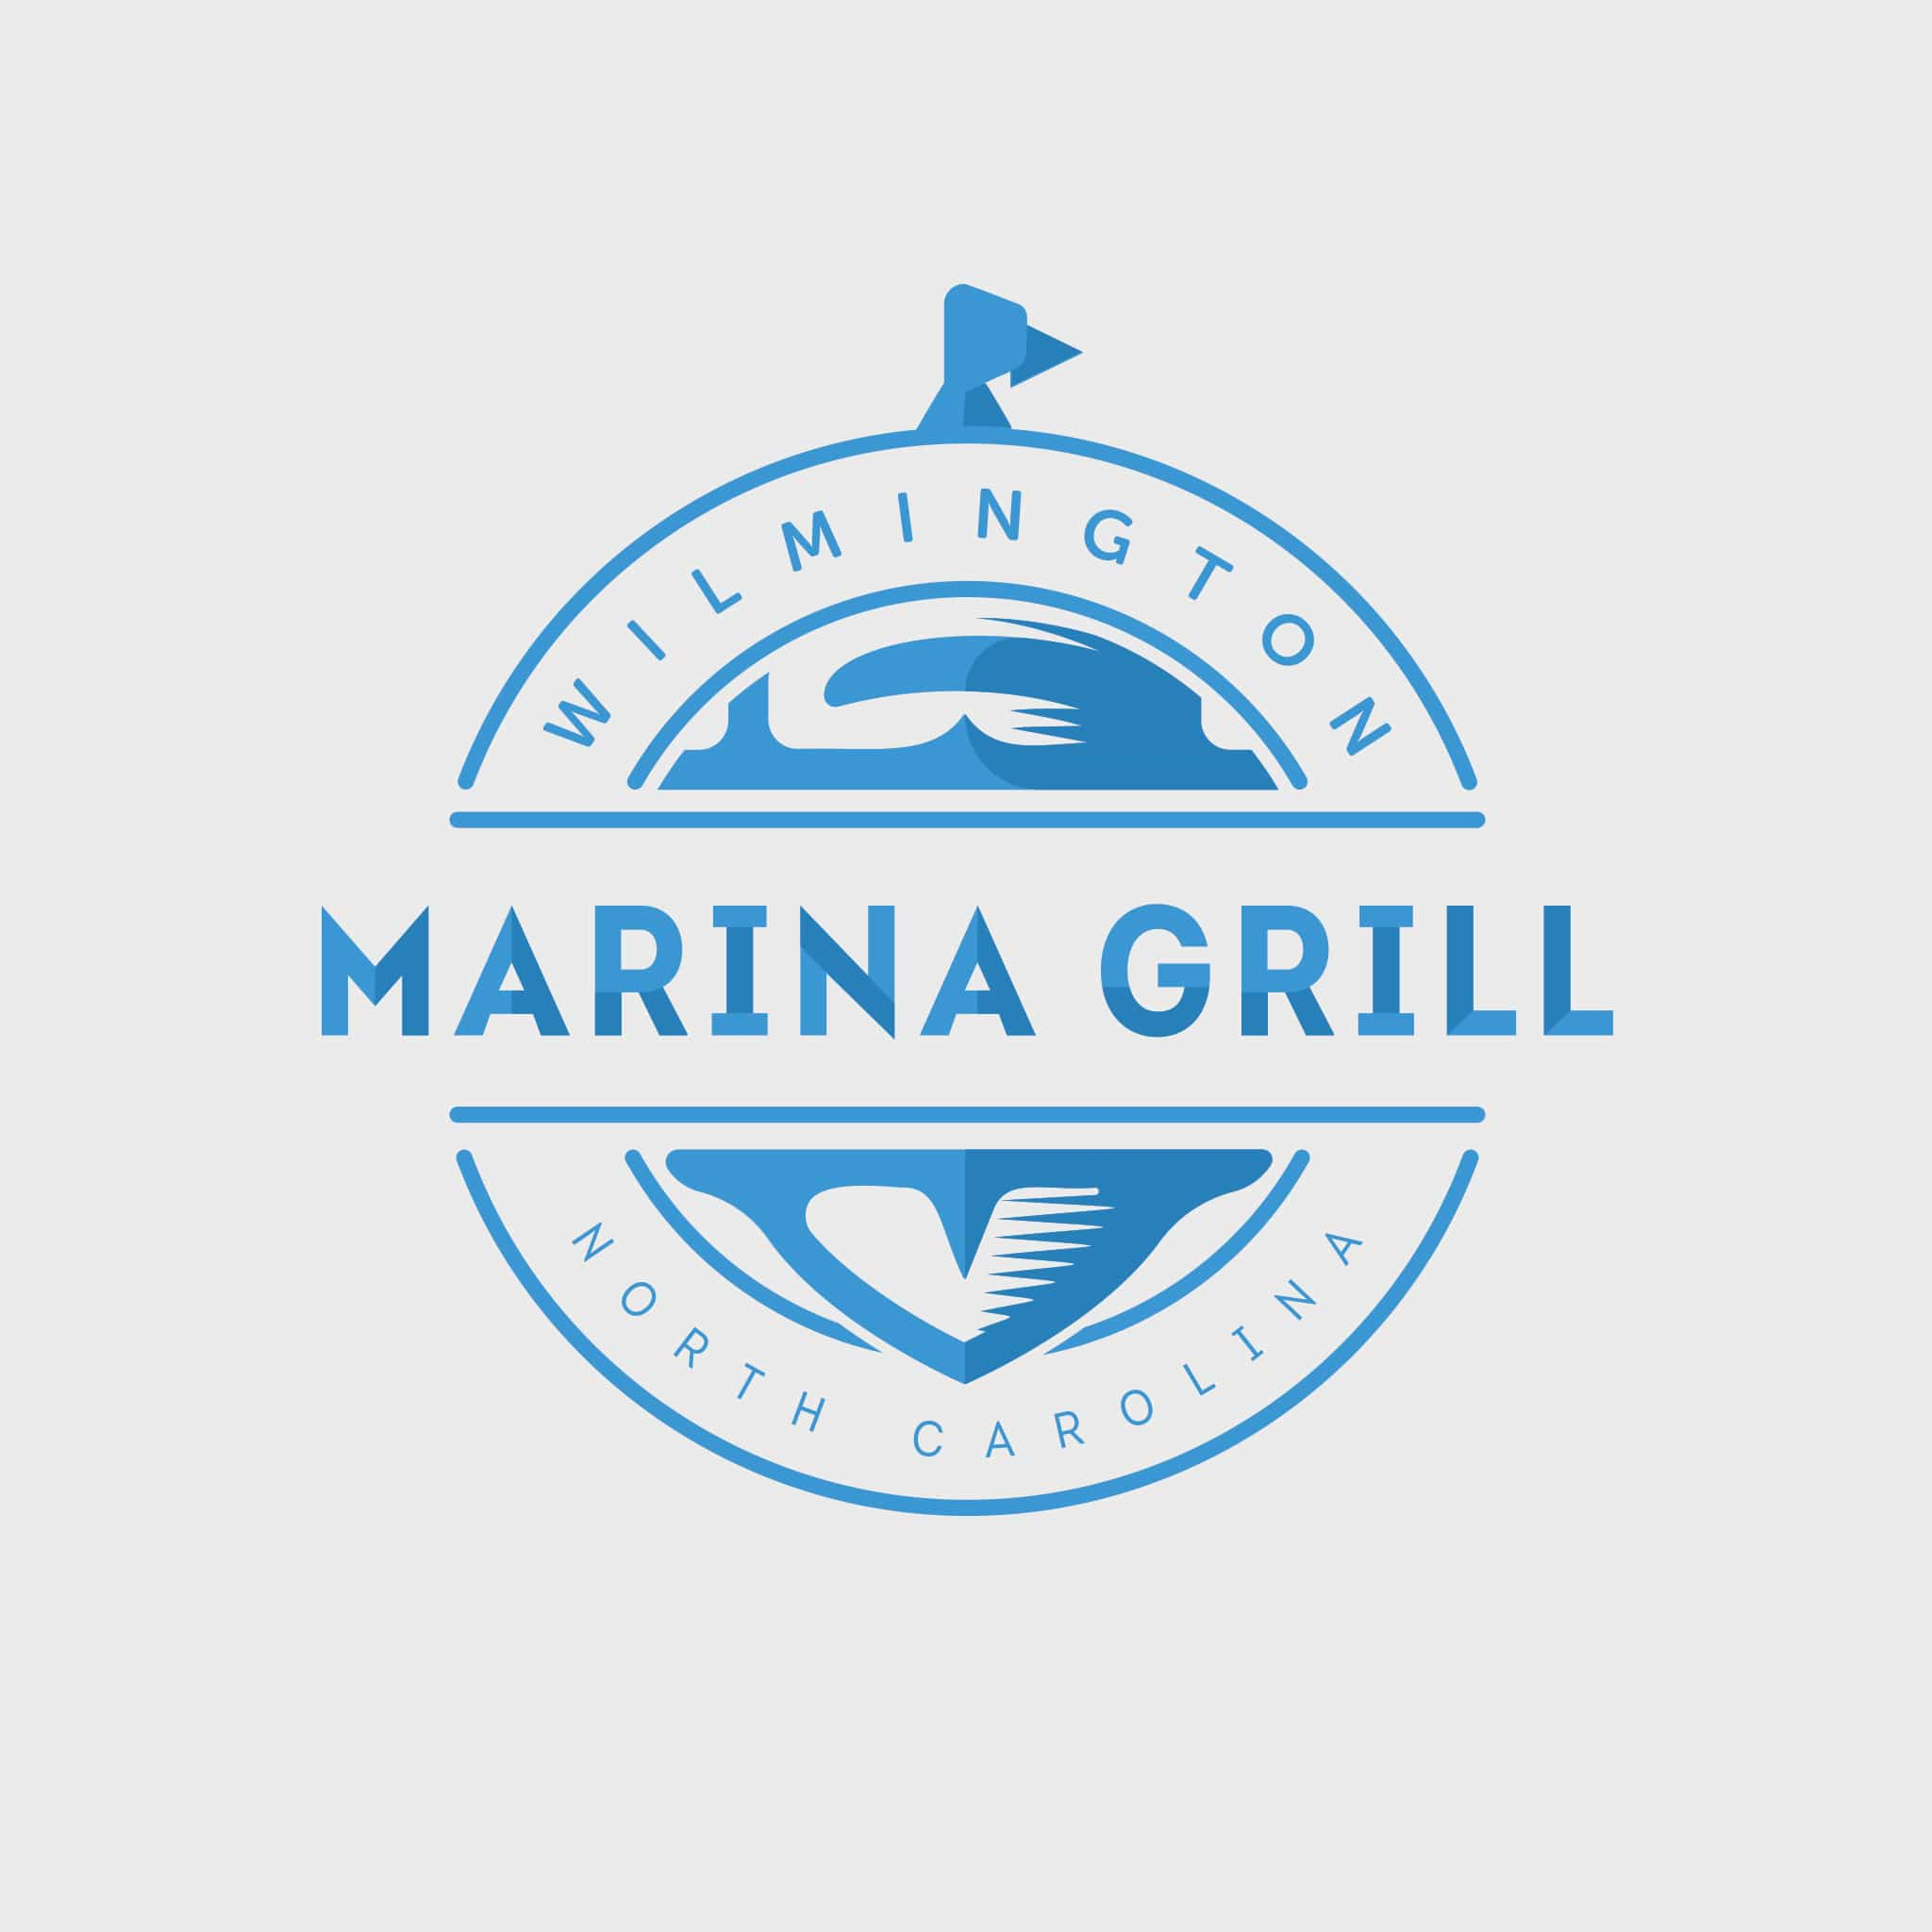 Marina Grill Logo Design by Brand Engine